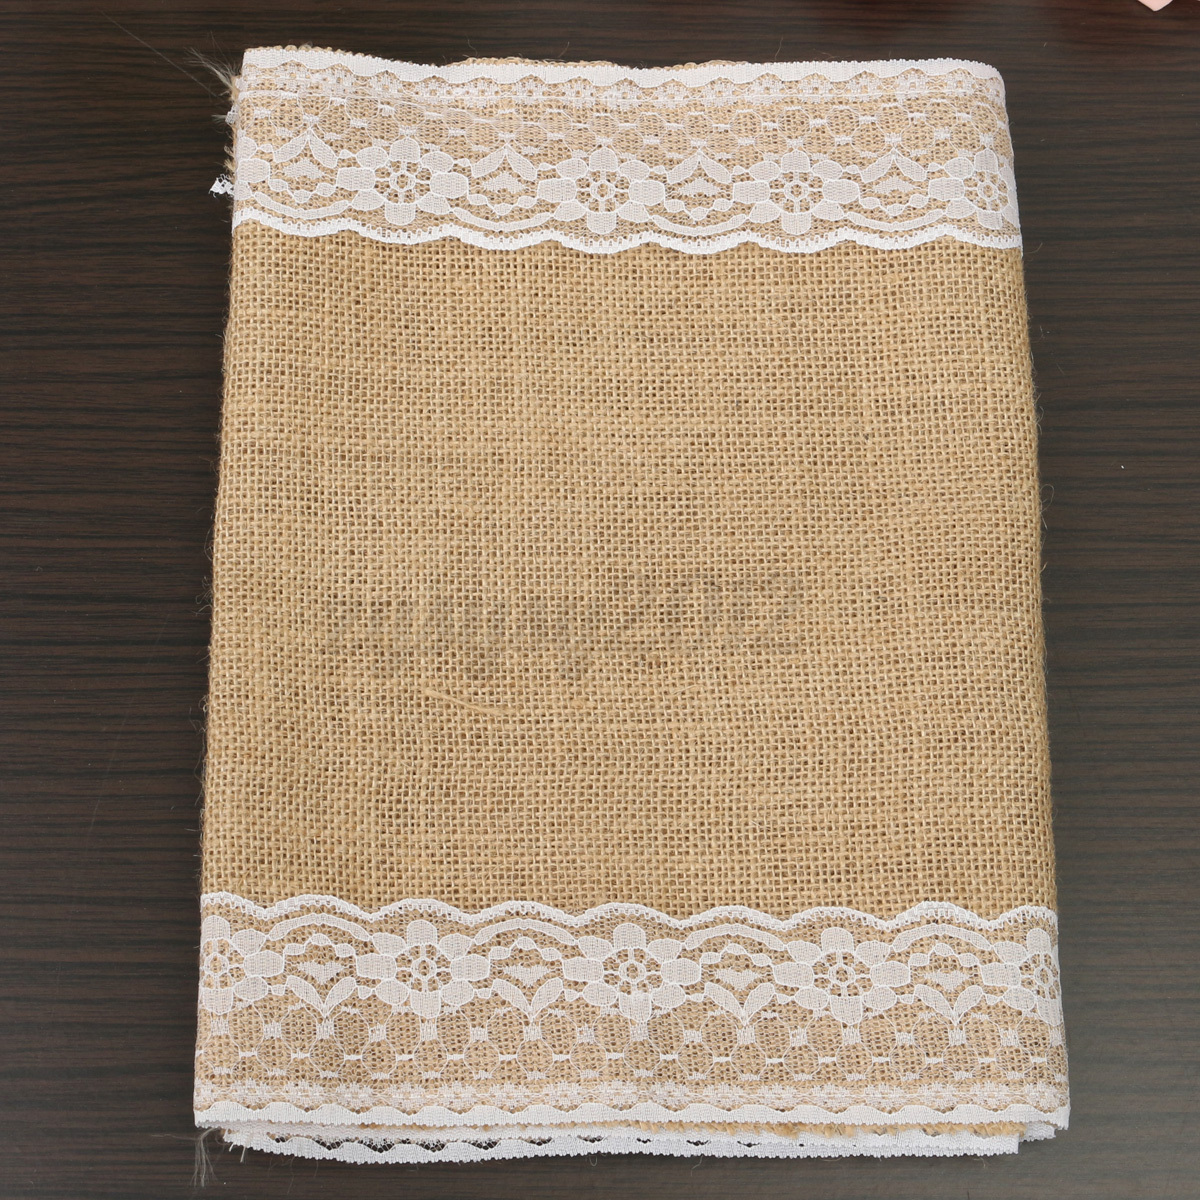 vintage burlap jute hessian lace table runner wedding party decoration ebay. Black Bedroom Furniture Sets. Home Design Ideas